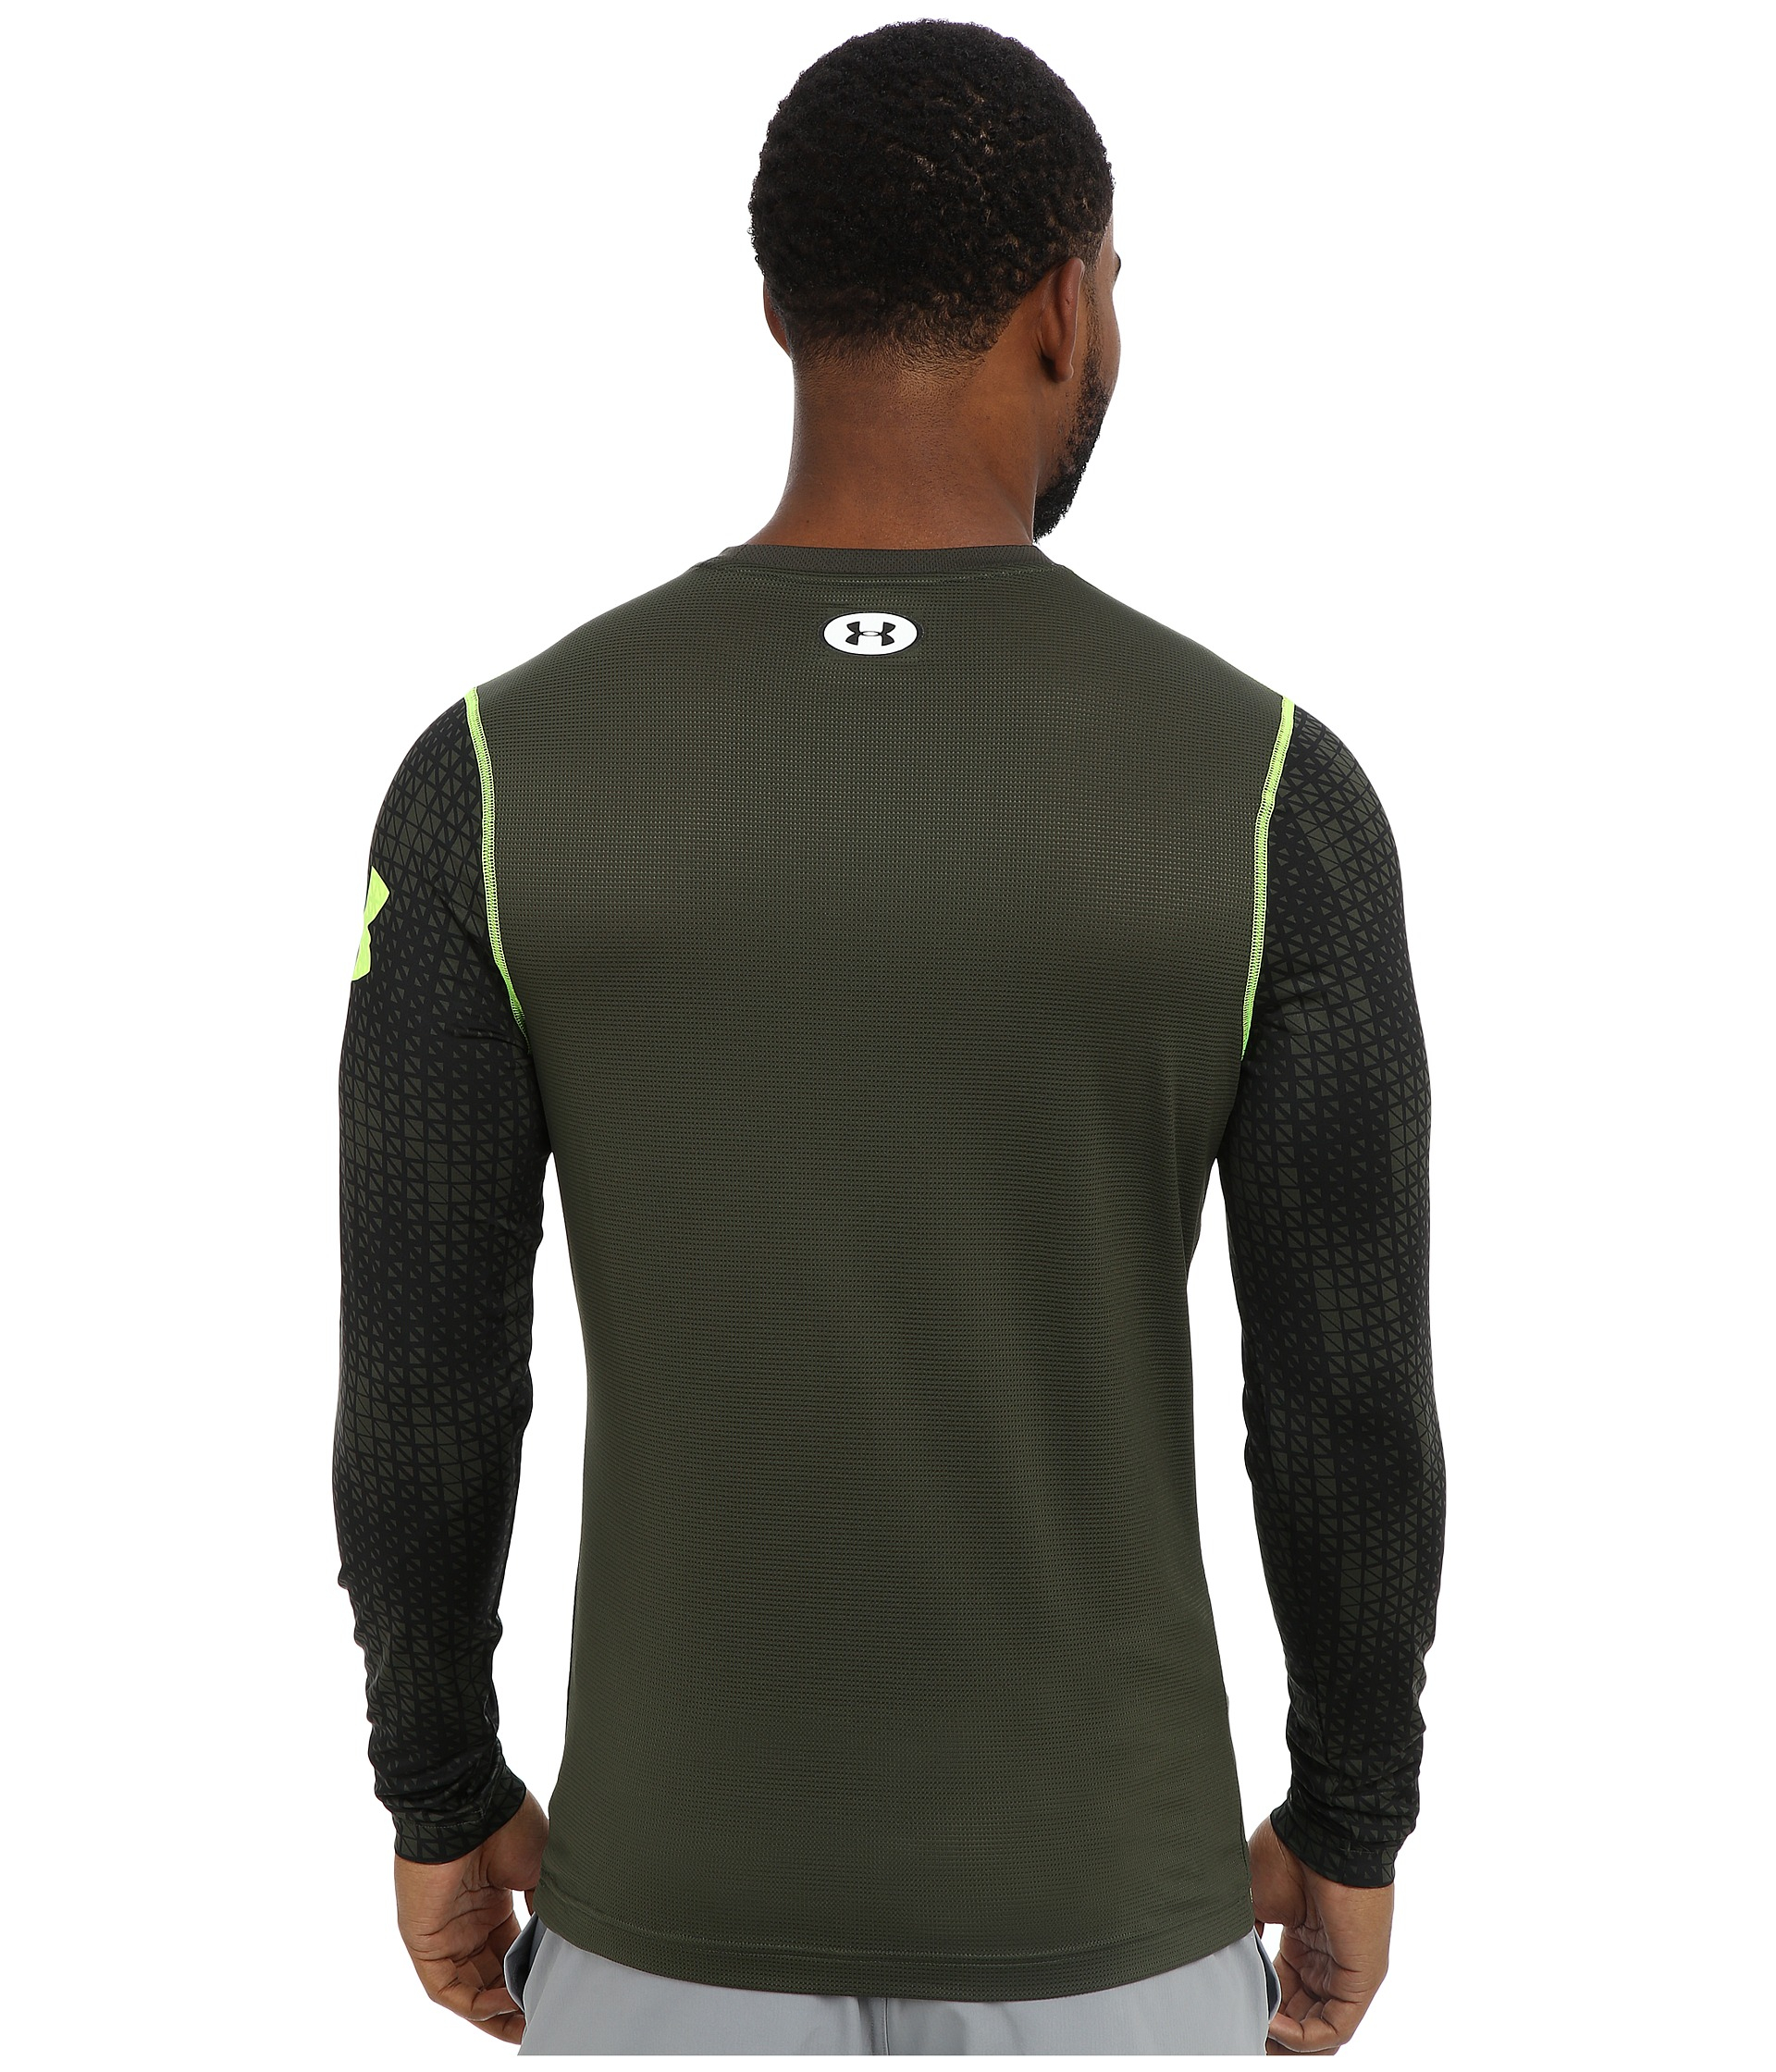 Under armour heatgear sonic fitted printed ls top in green for Under armour men s heatgear sonic fitted t shirt